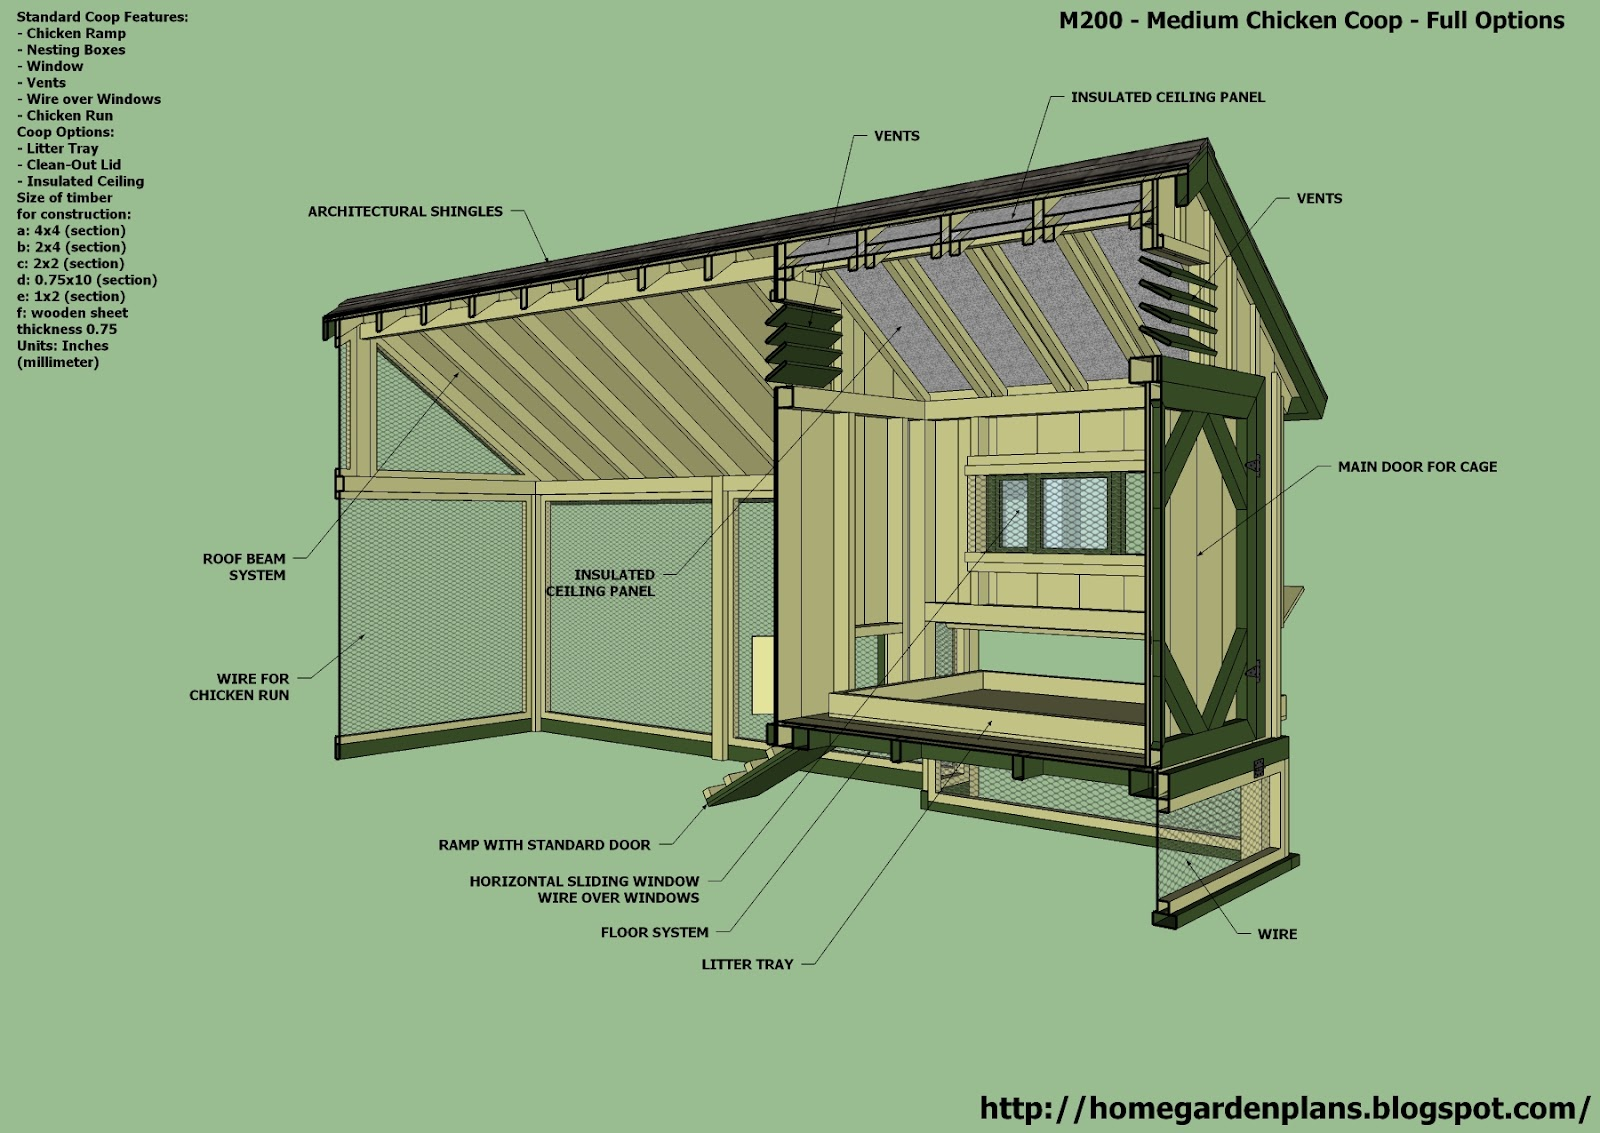 Home garden plans m200 chicken coop plans construction for Plans for a chicken coop for 12 chickens